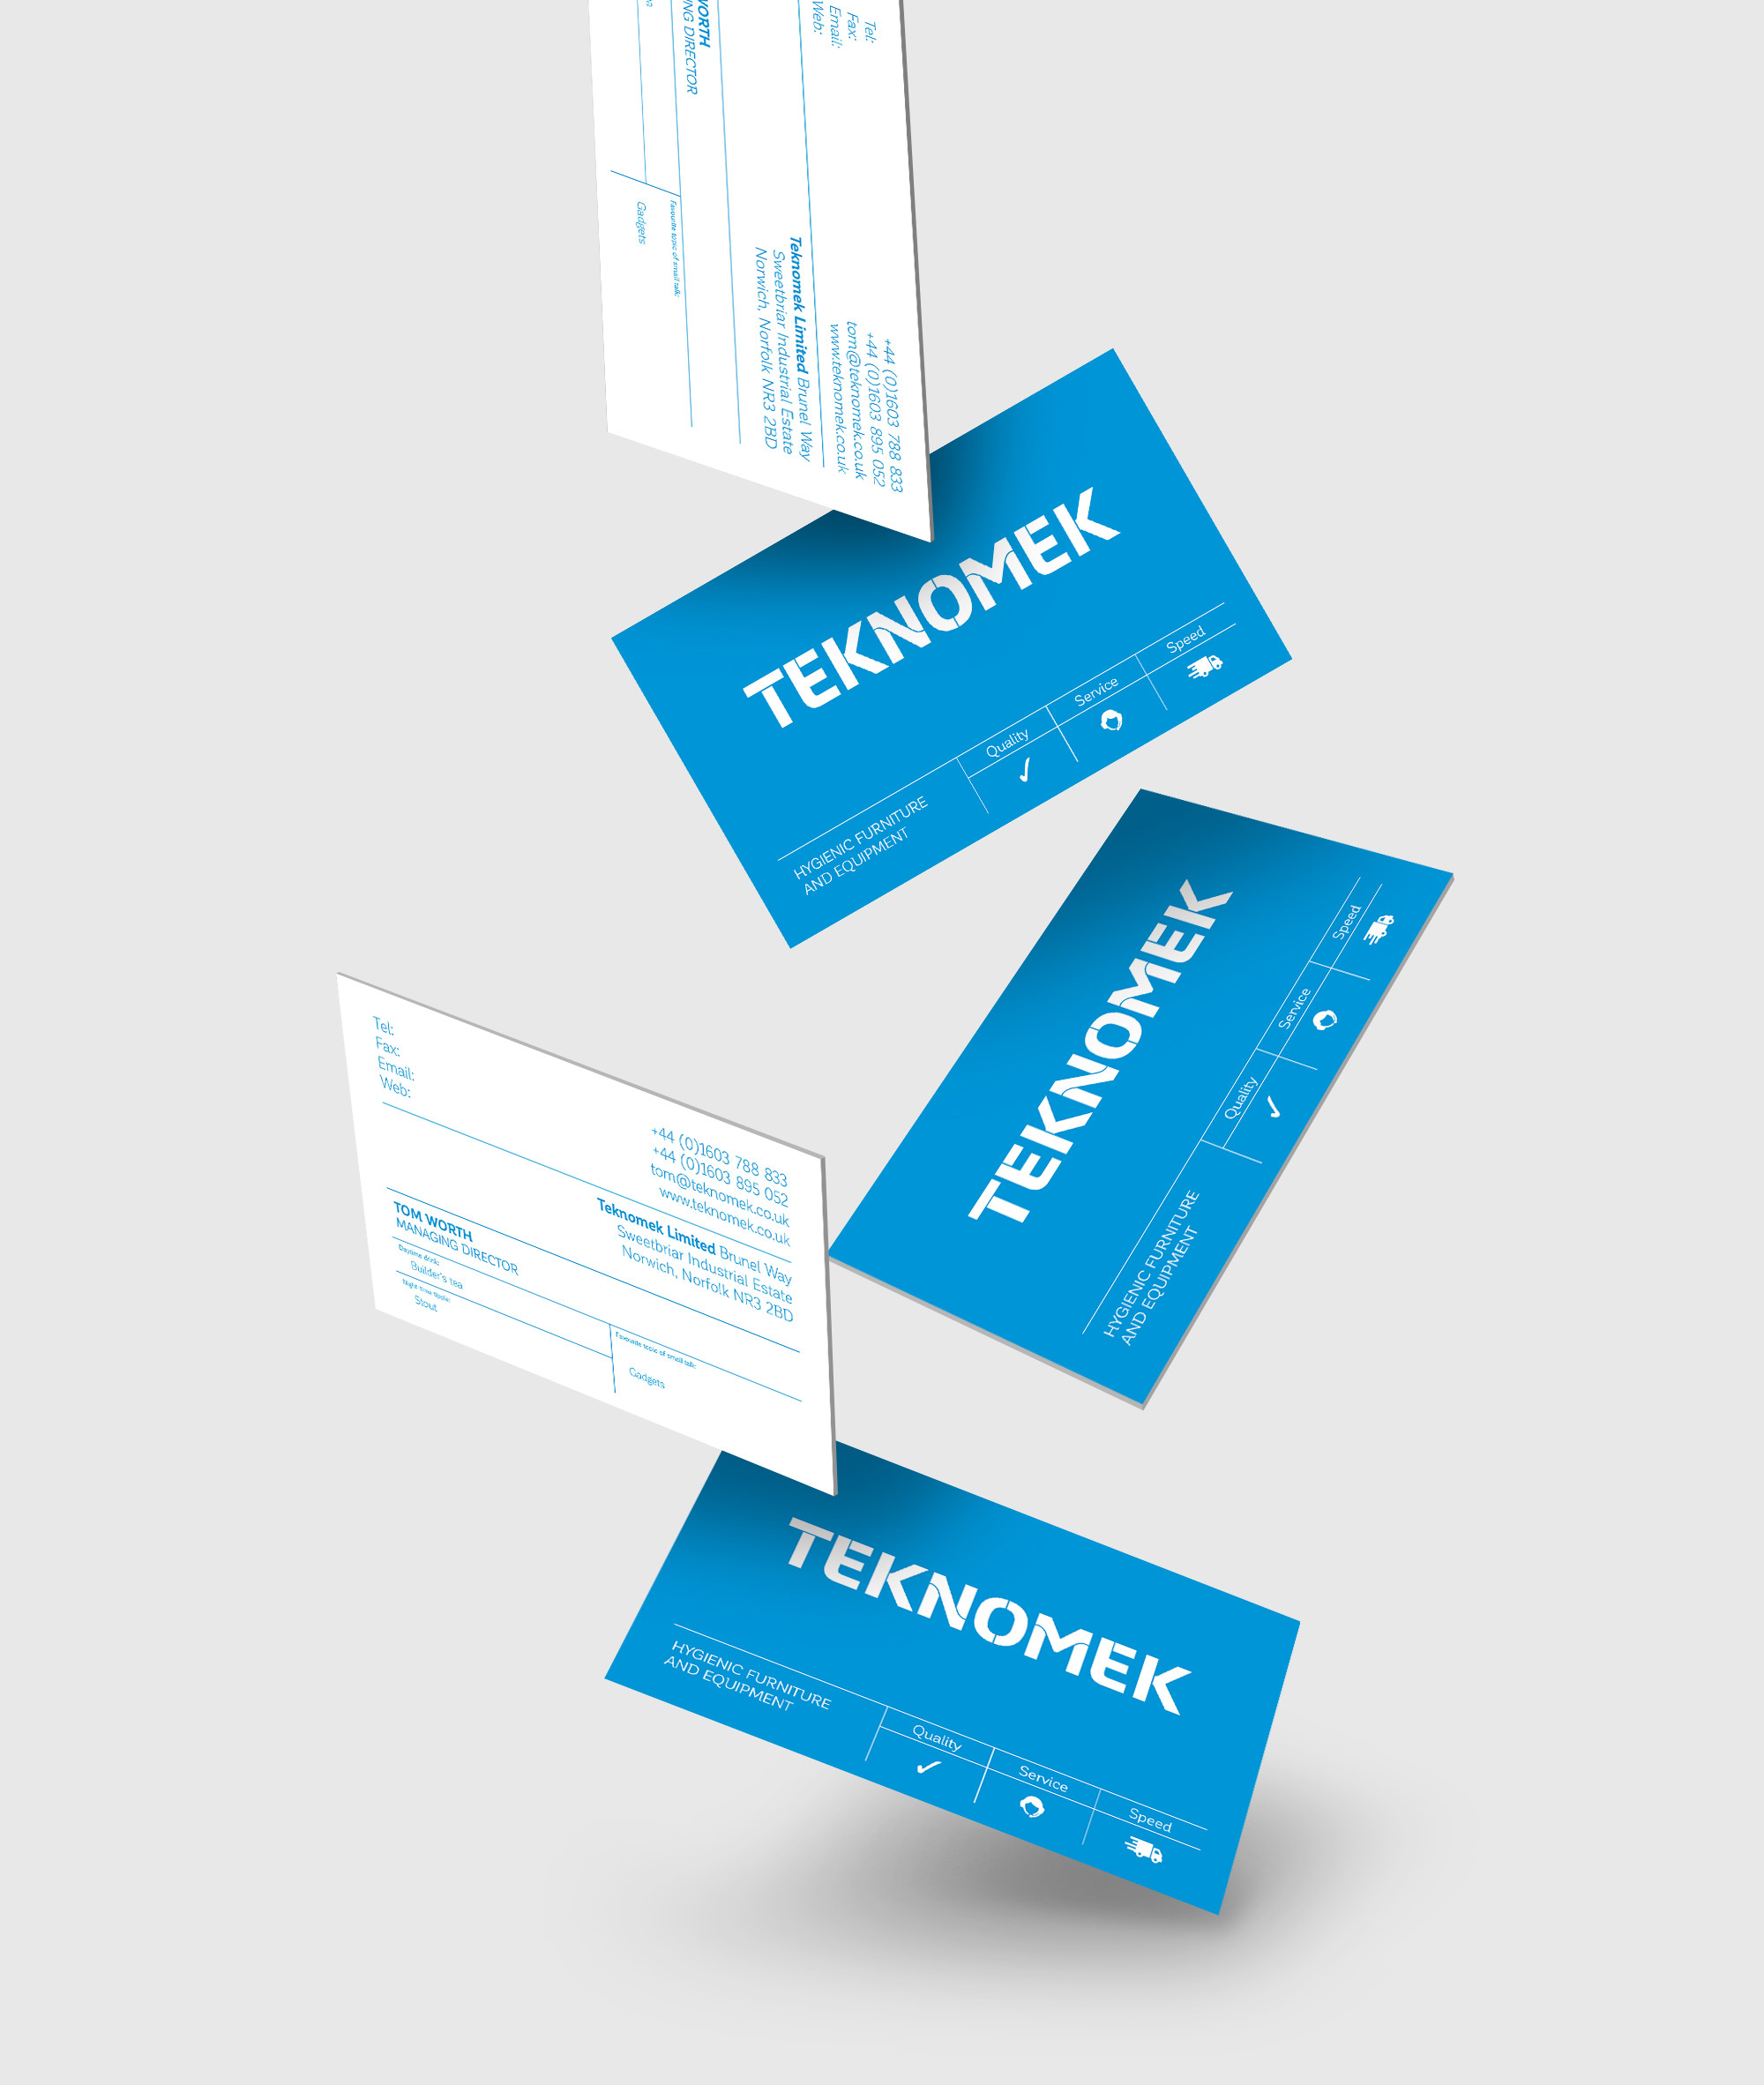 Teknomek Business cards